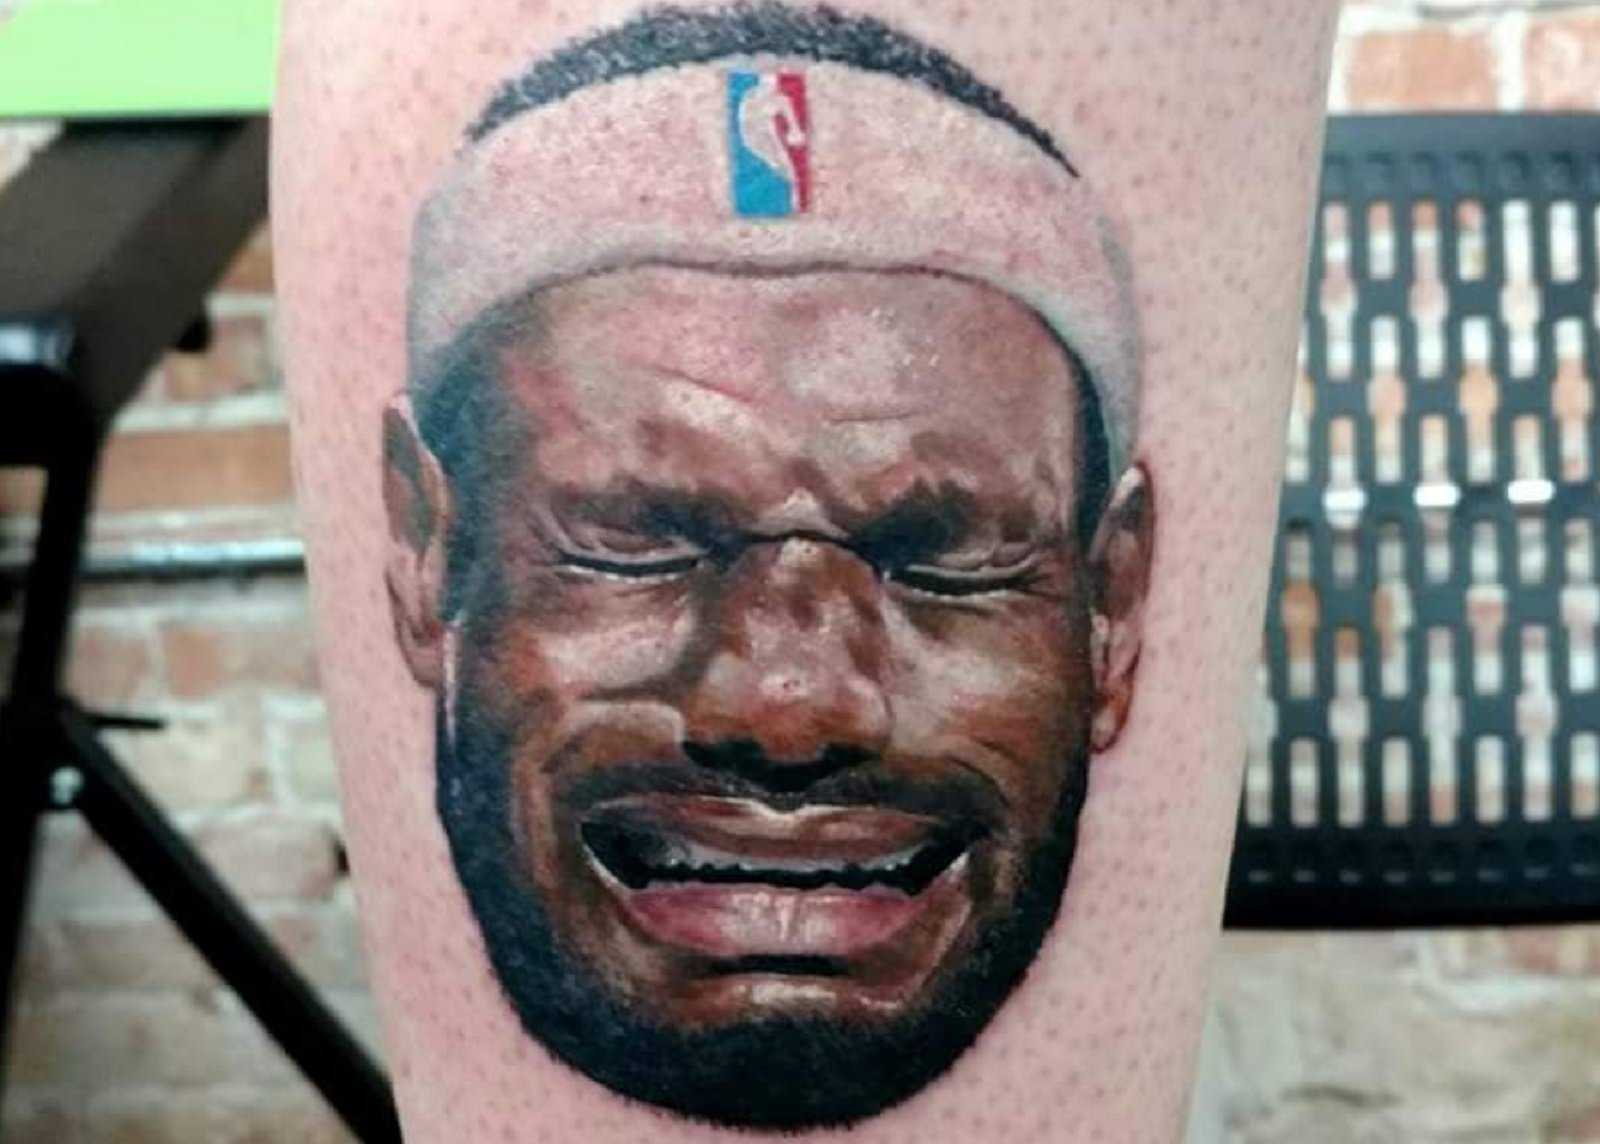 Man gets crying LeBron James tattoo on leg